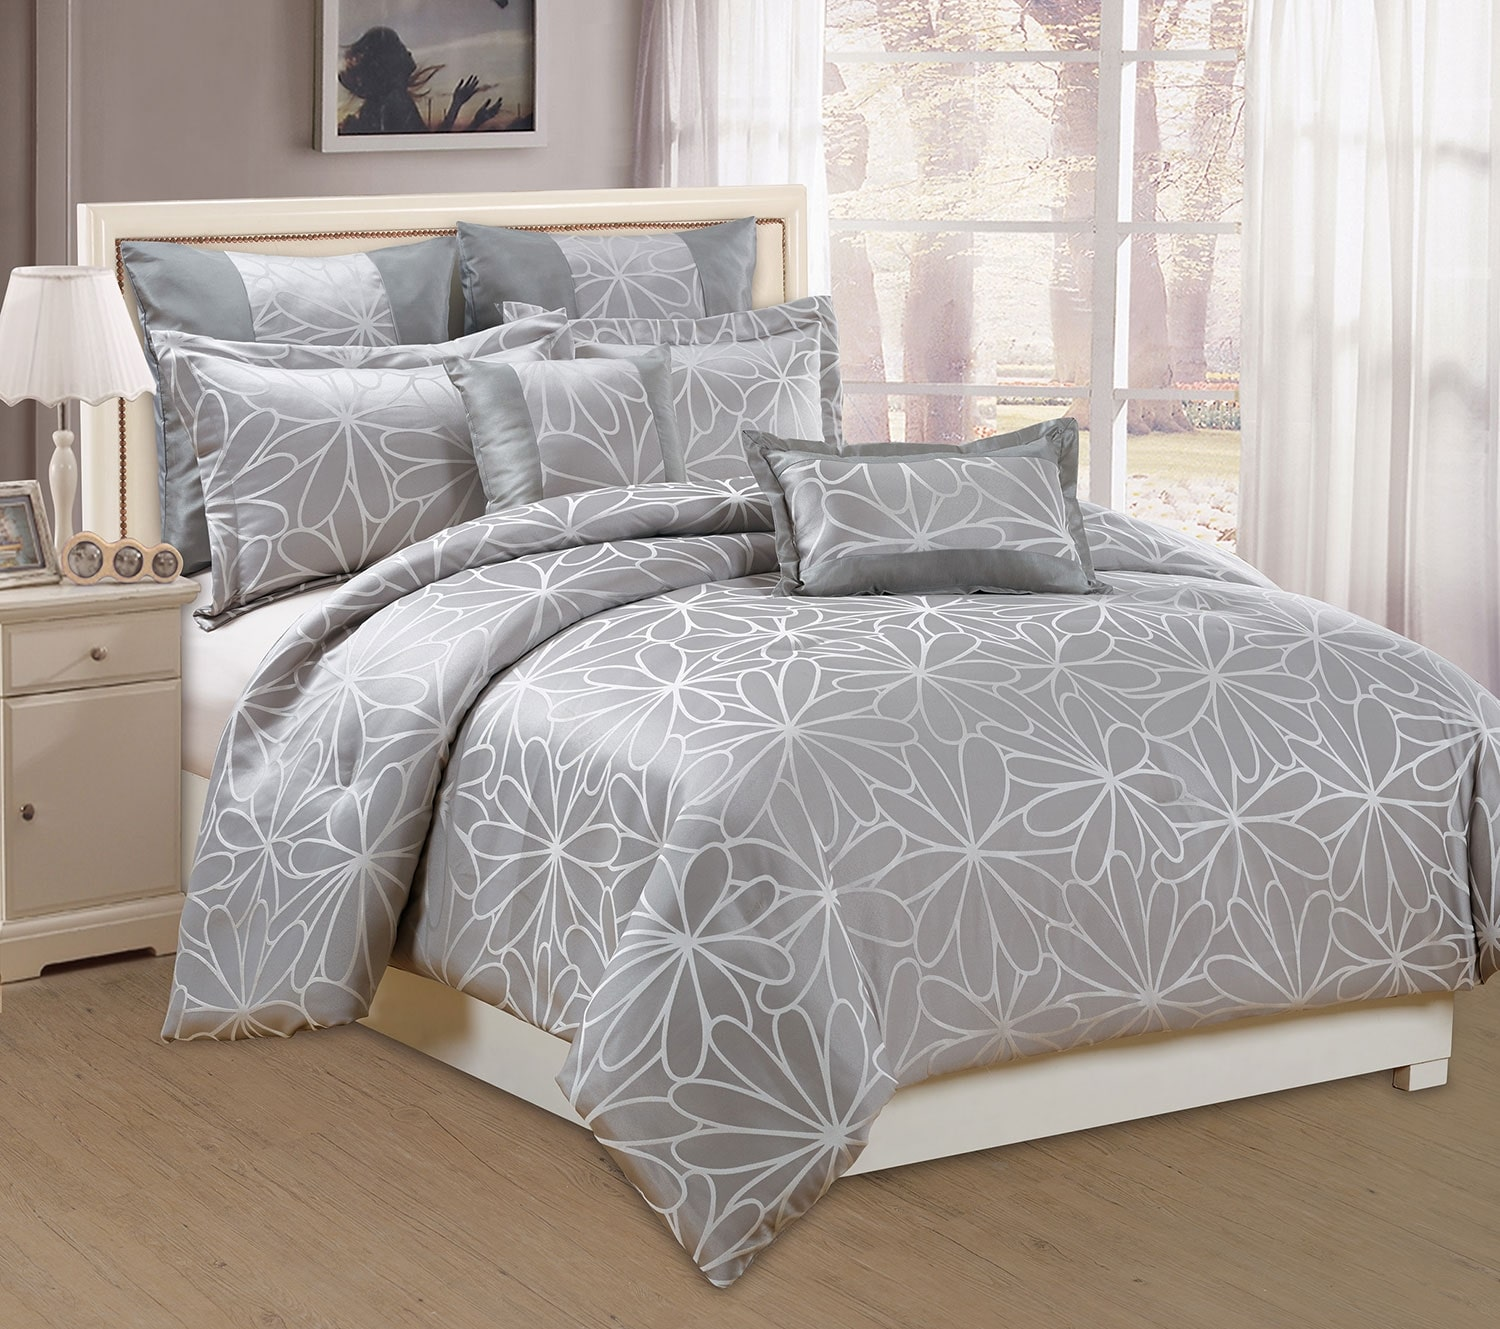 Mattresses and Bedding - Daisy 7-Piece Queen Comforter Set